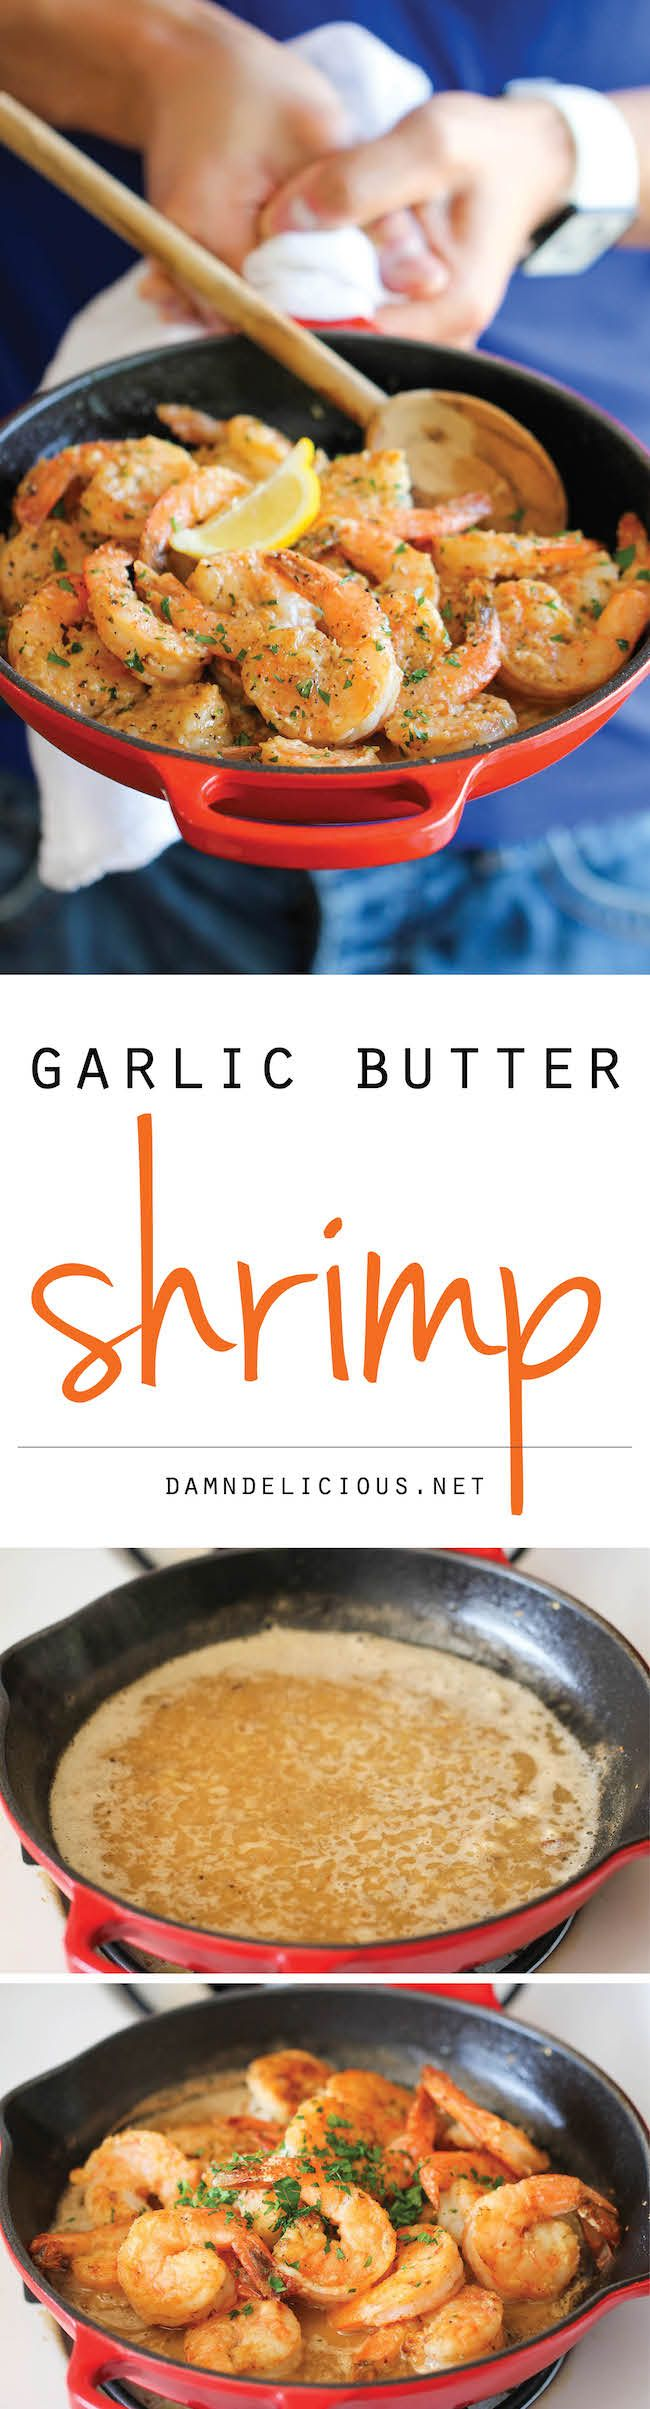 Garlic Butter Shrimp @FoodBlogs